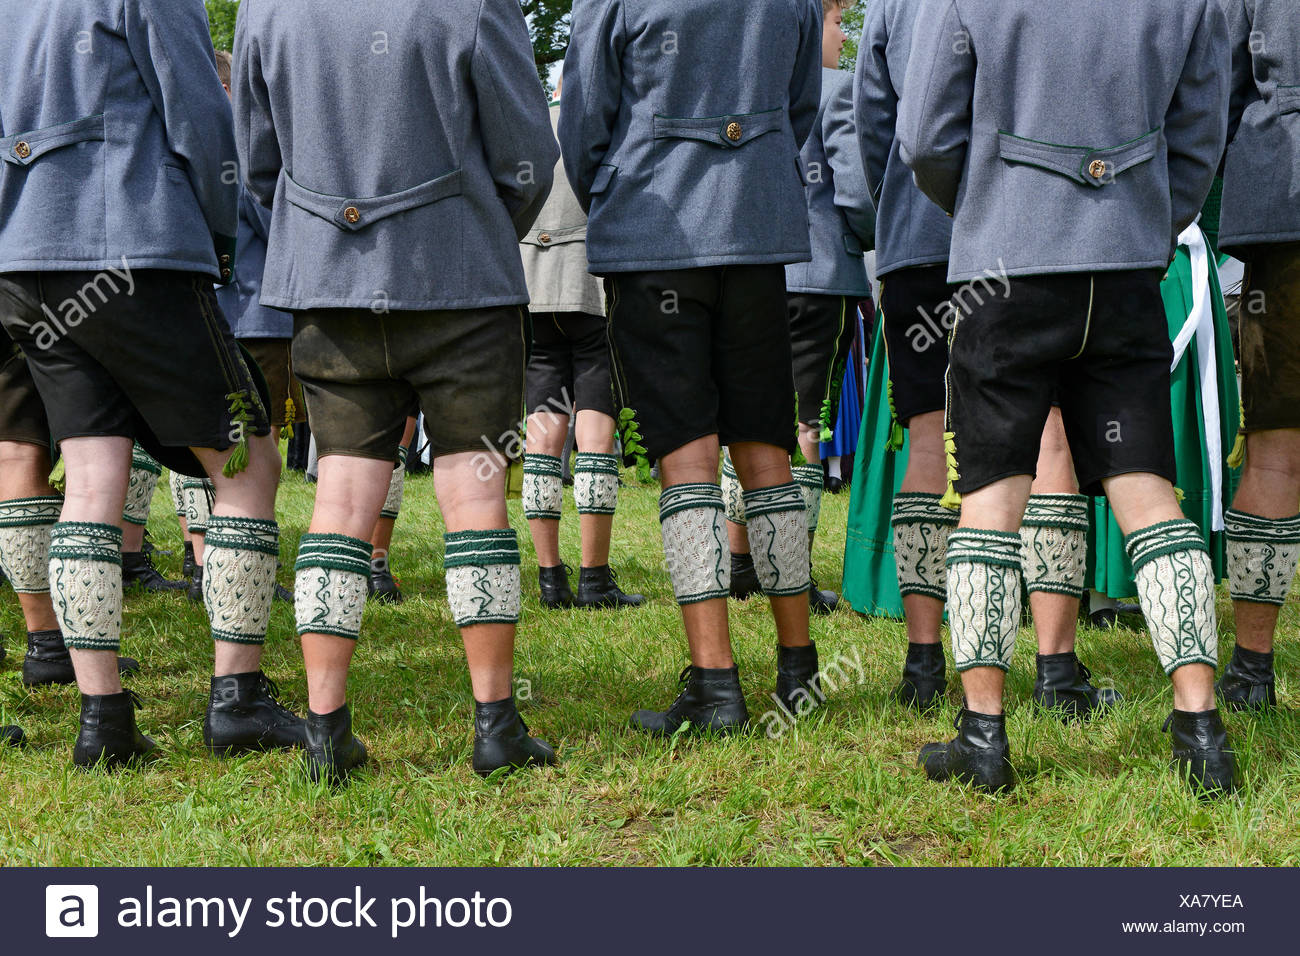 Men in leather trousers and traditional Loferl, traditional costume parade, Oberland Gaufest in Baiernrain, Upper Bavaria - Stock Image